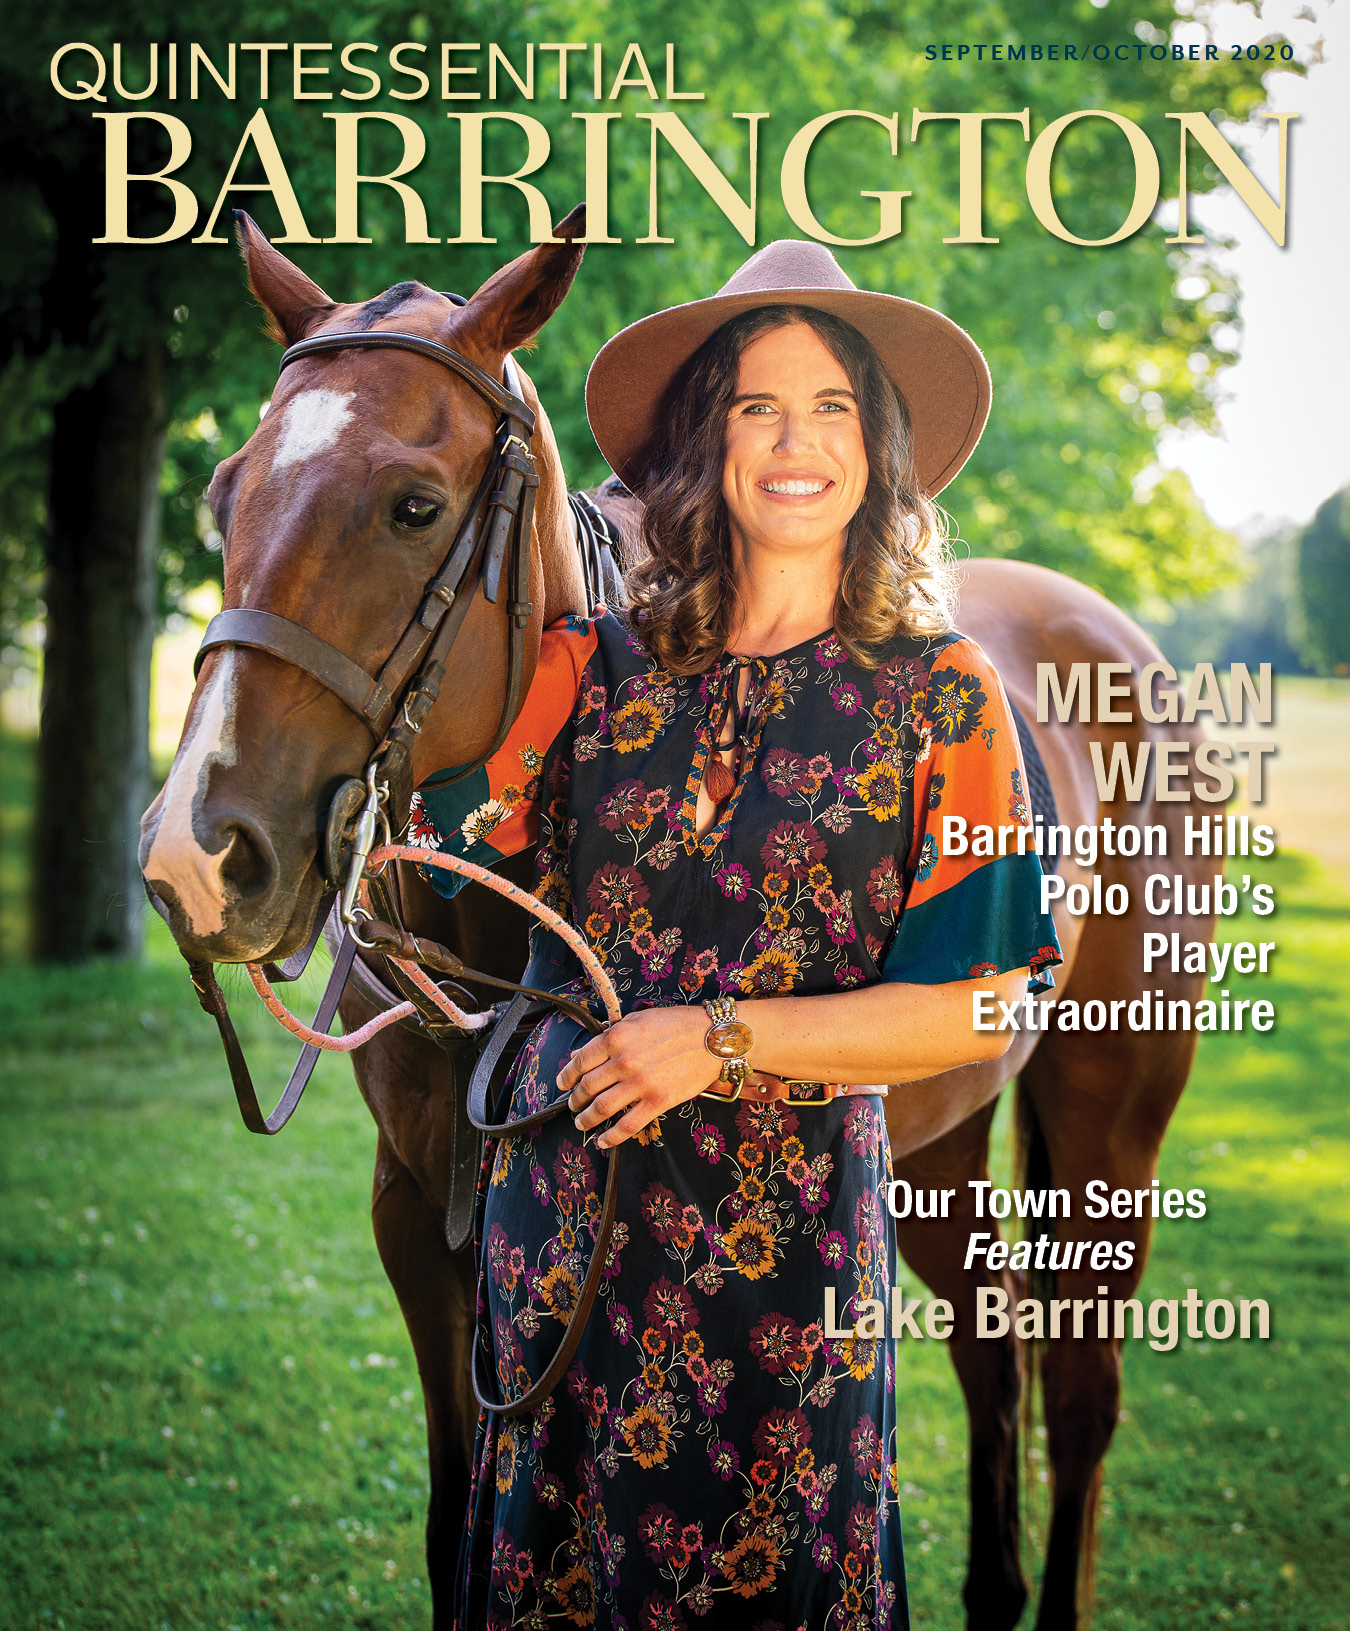 Sept/Oct Quintessential Barrington